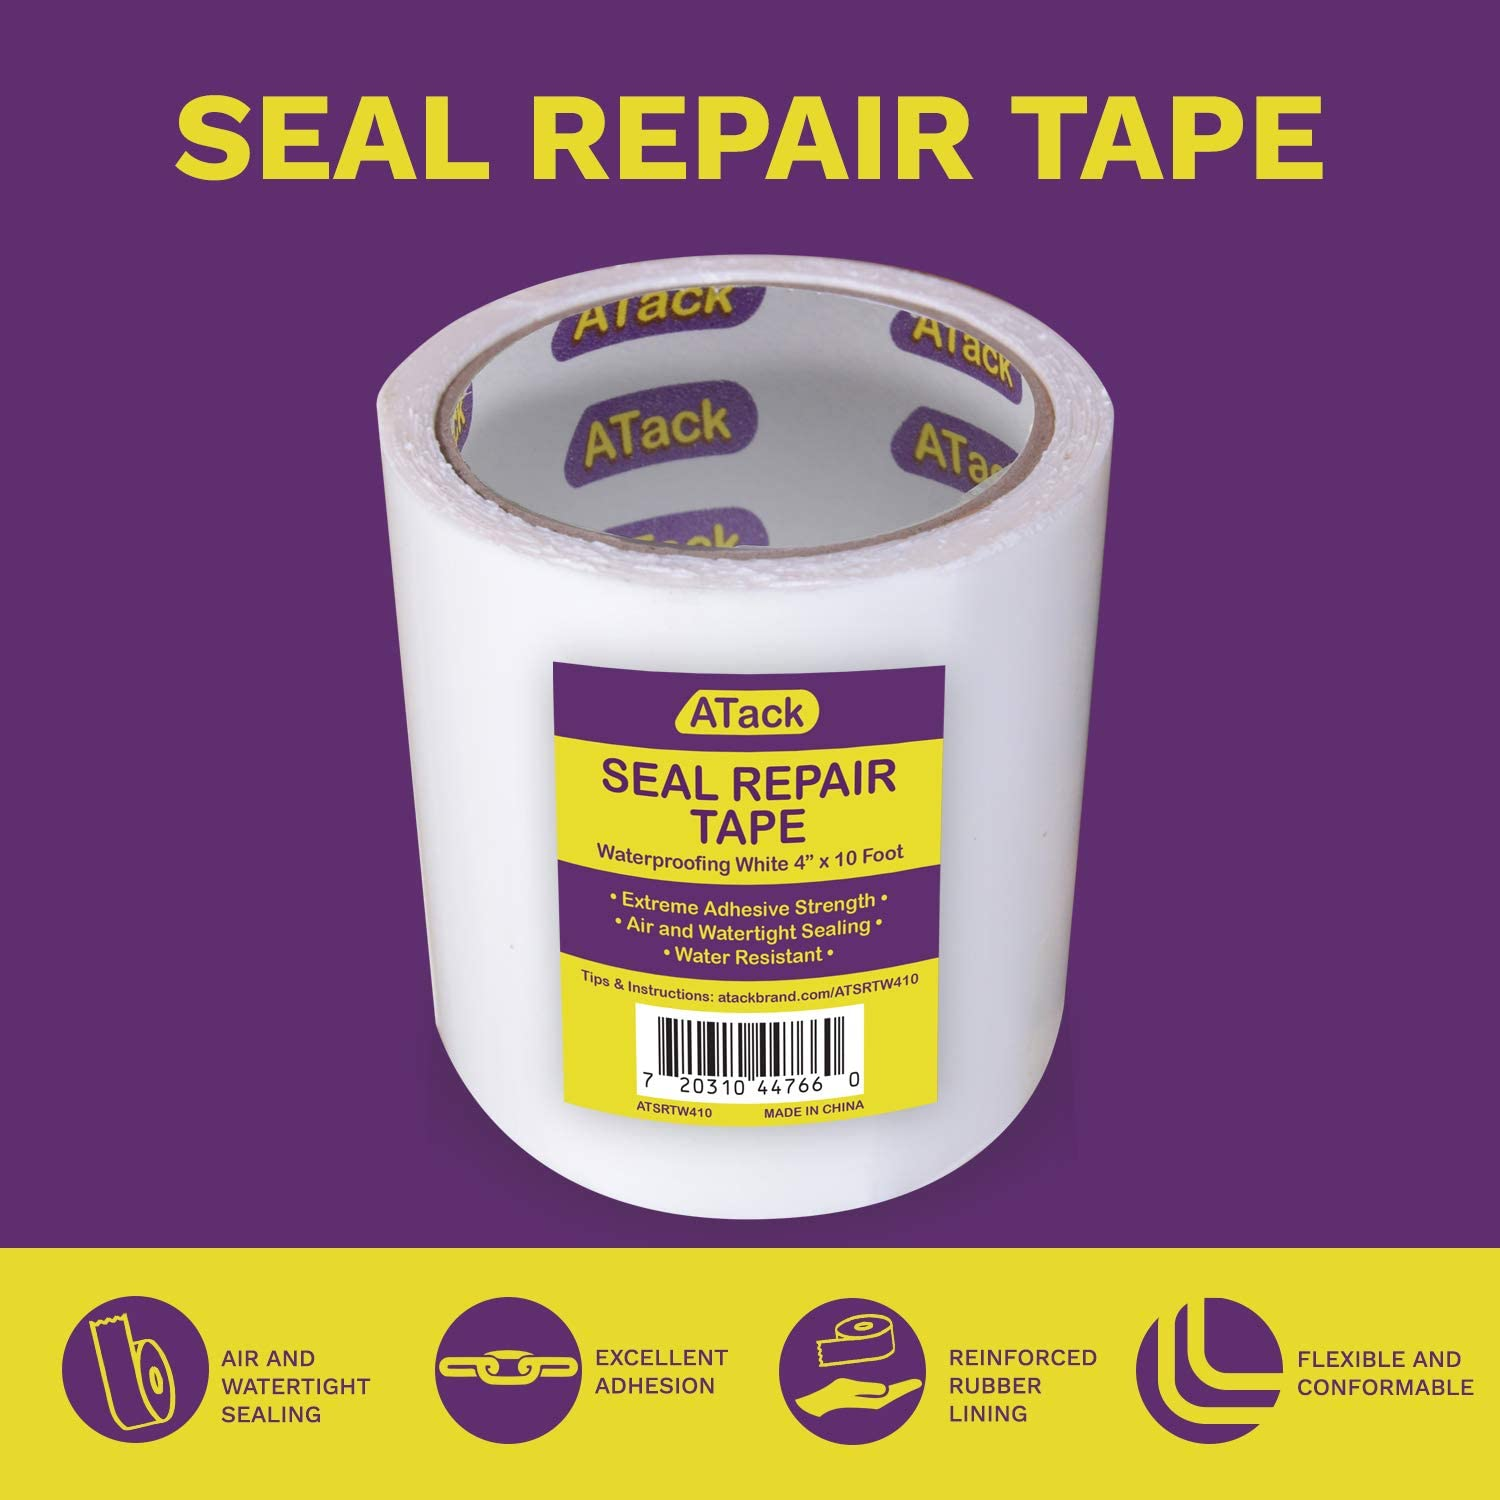 Roof Chimney Clear ATack Waterproof Patch and Seal Tape 4 Inches x 10 Feet Water Barrier Tape for Stop Leak Repair on Pipes and HVAC Boat